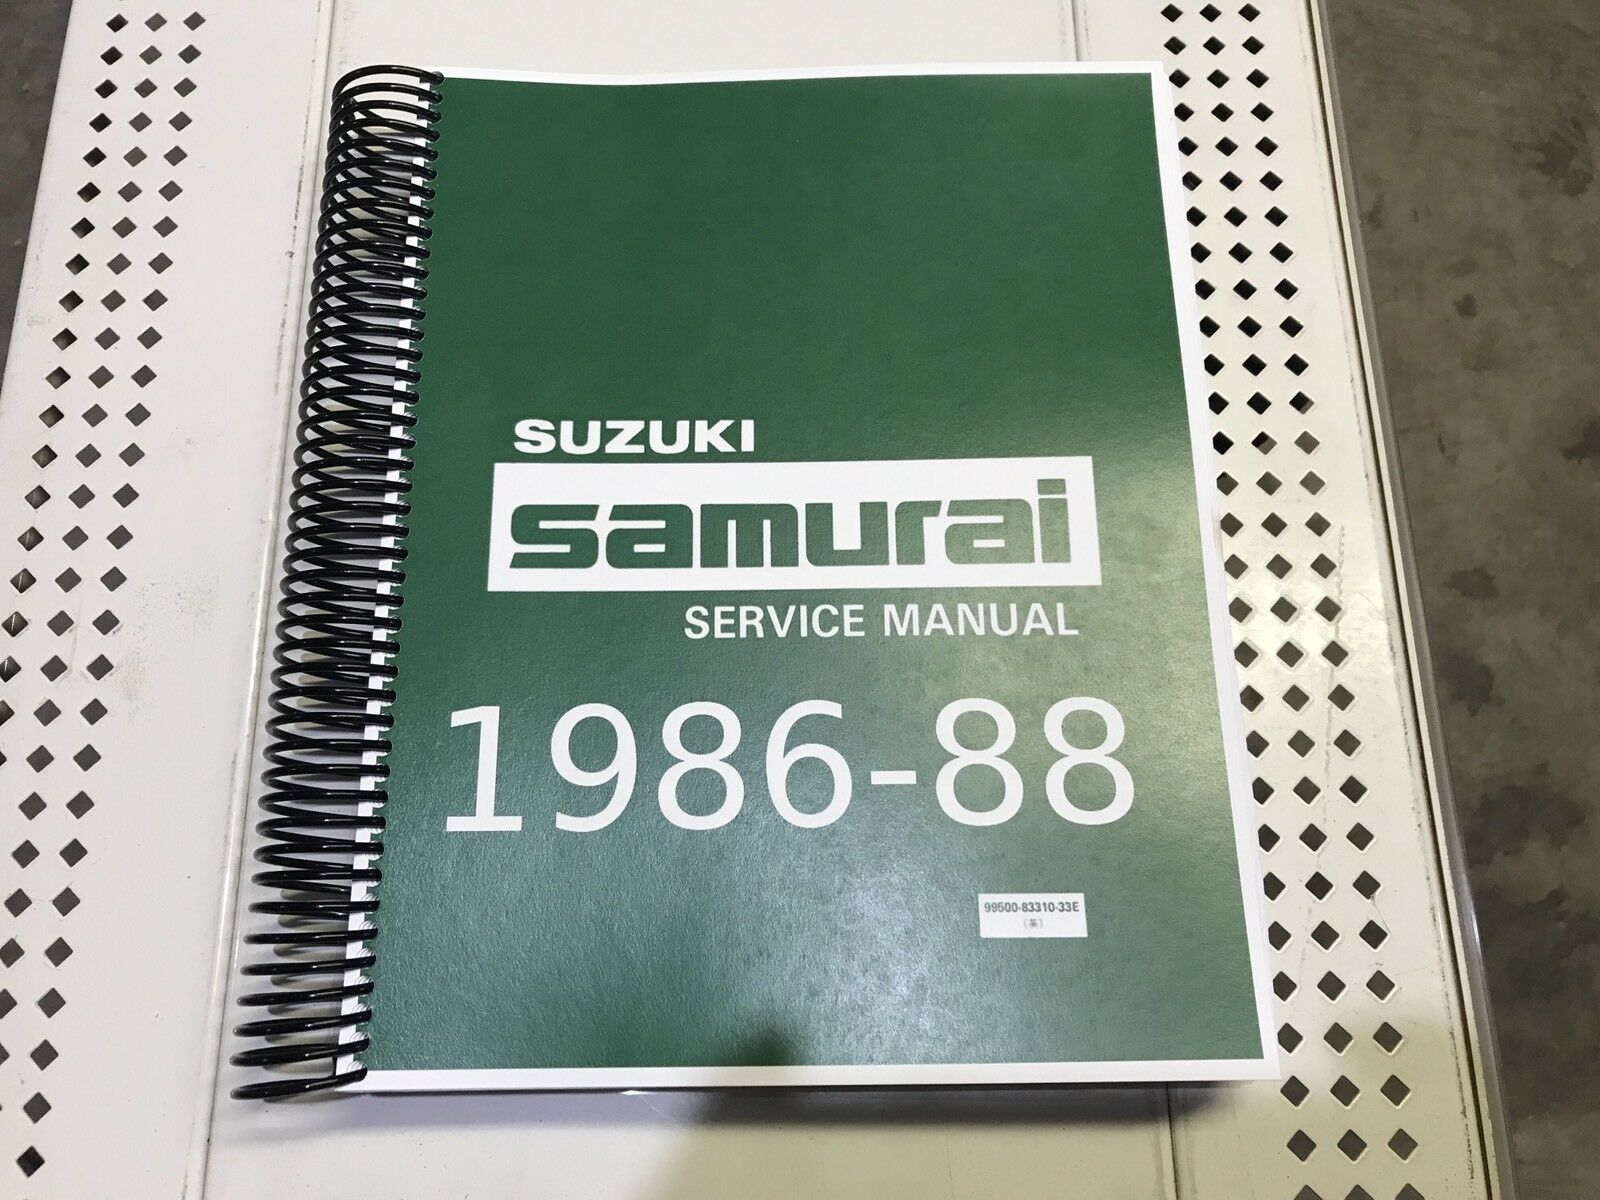 Suzuki Samurai Factory Service Repair Shop Manual 1986 1987 & 1988 NEW 86  87 88 1 of 7Only 3 available ...